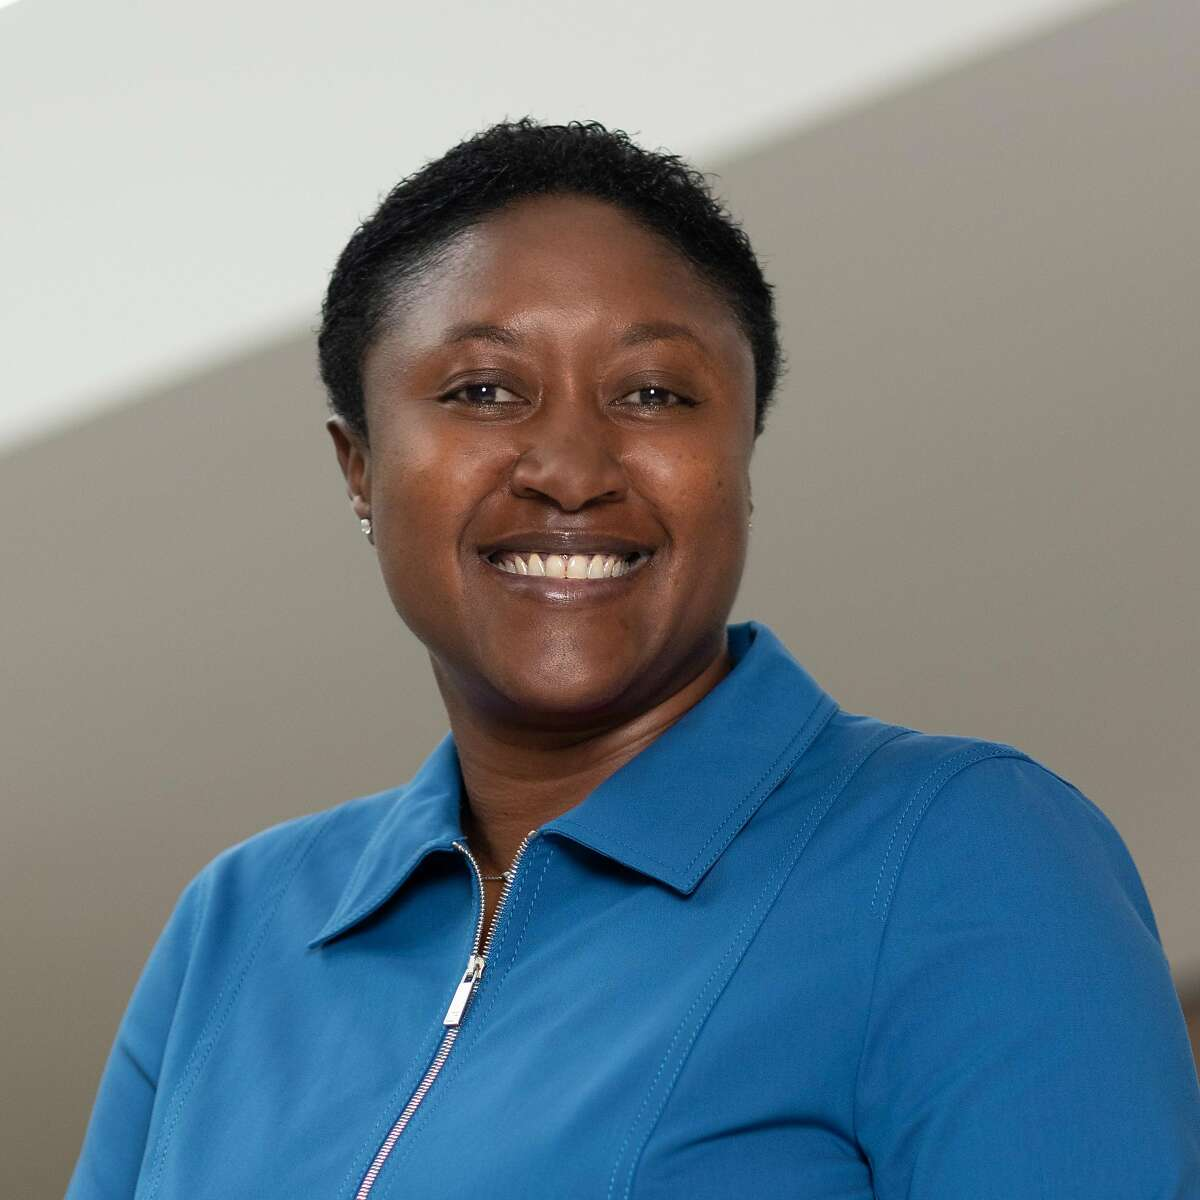 Aicha Evans has been appointed CEO of robot-car startup Zoox. Previously she worked at Intel for over 12 years, most recently as chief strategy officer.